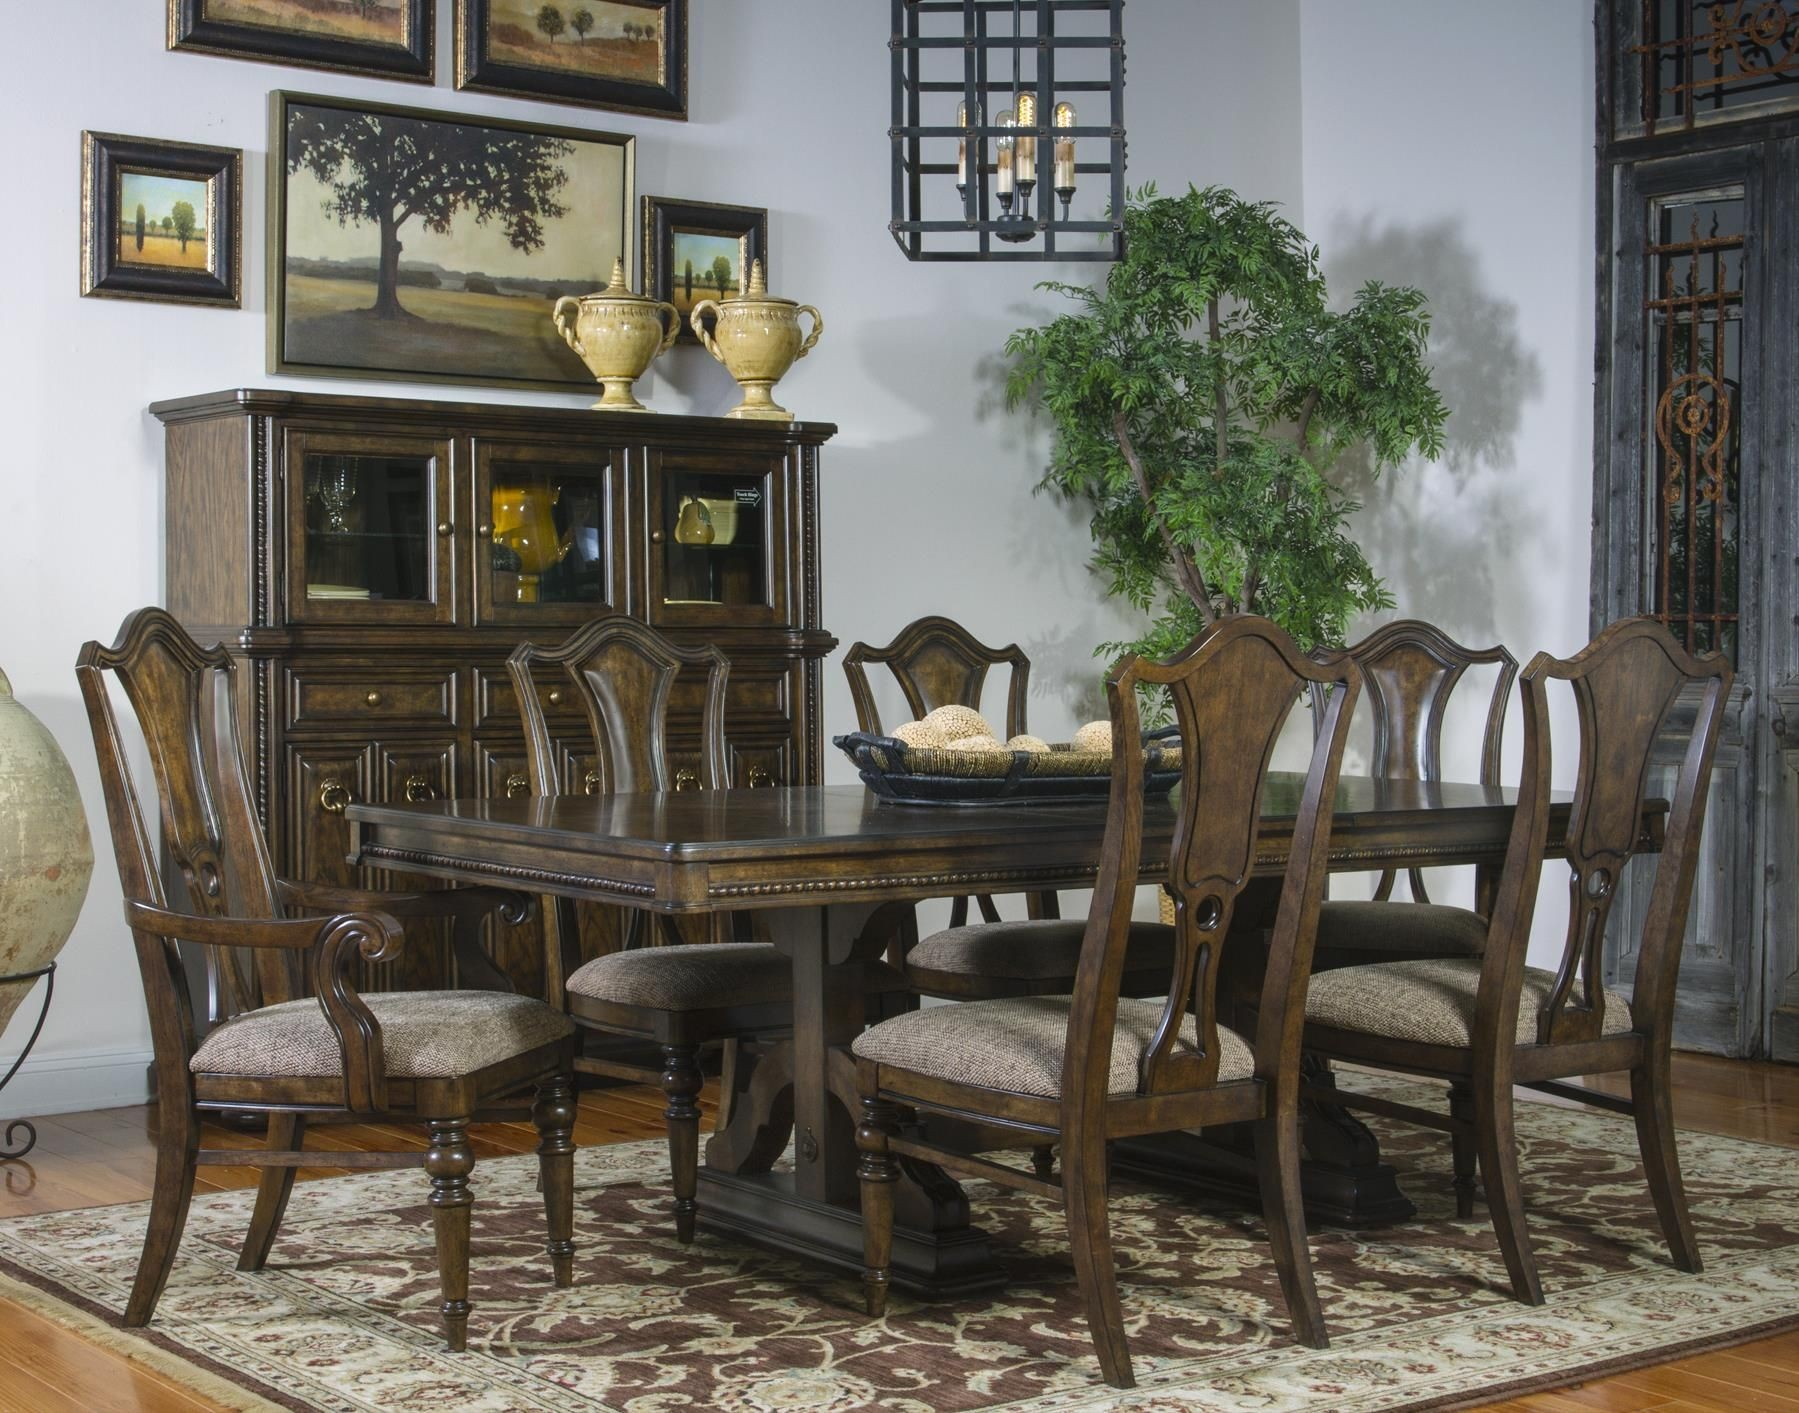 Canyon creek vintage oak extendable trestle dining room for Fairmont designs dining room